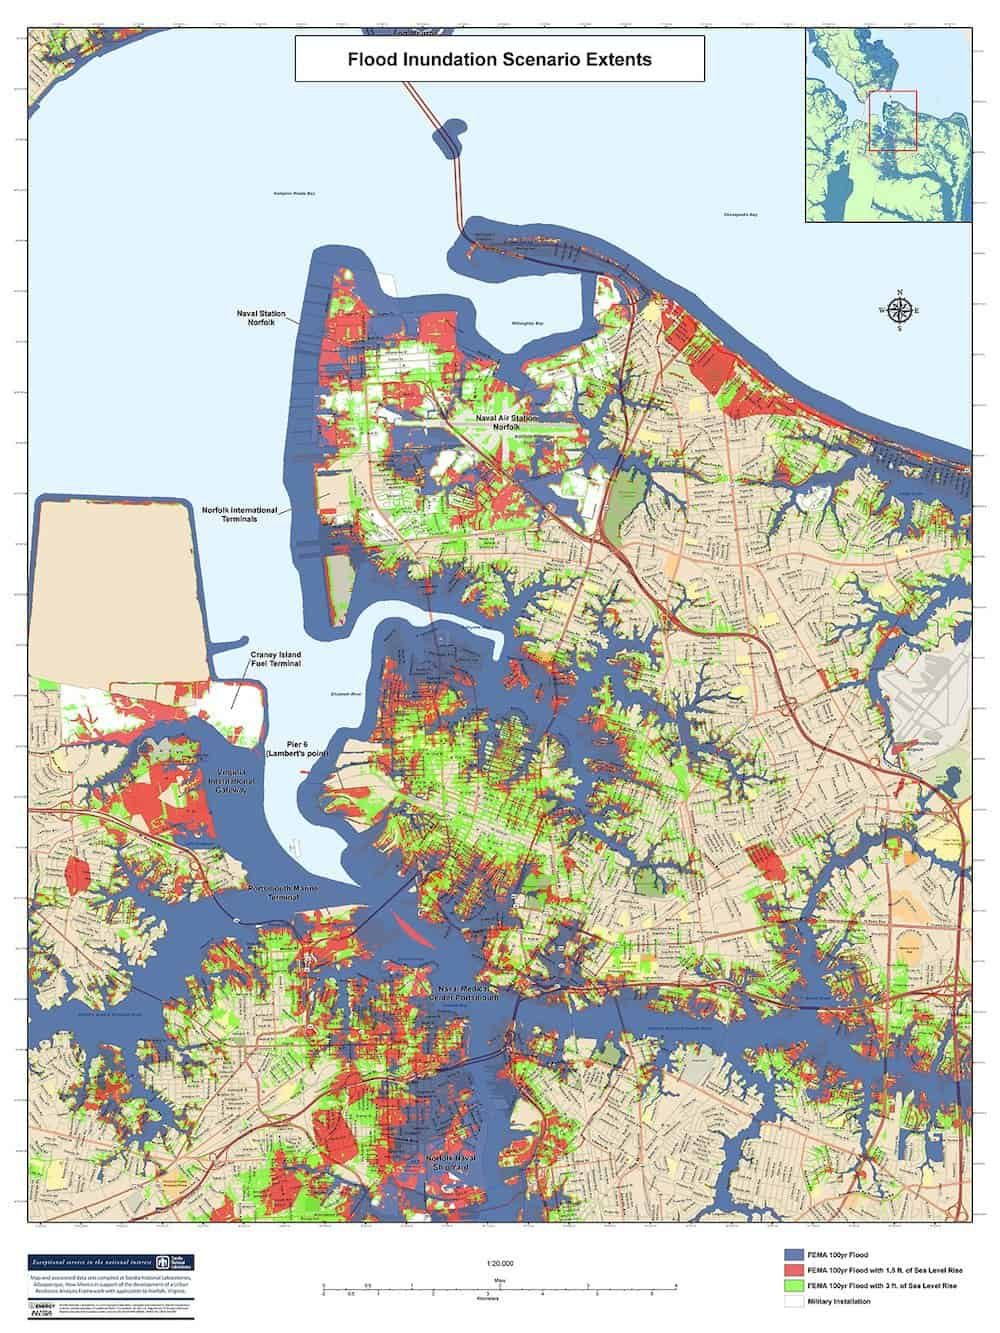 As part of its work in developing local urban resilience in Norfolk, VA, Sandia/California developed maps showing varying levels of potential flooding. (Credit: Sandia National Laboratories)